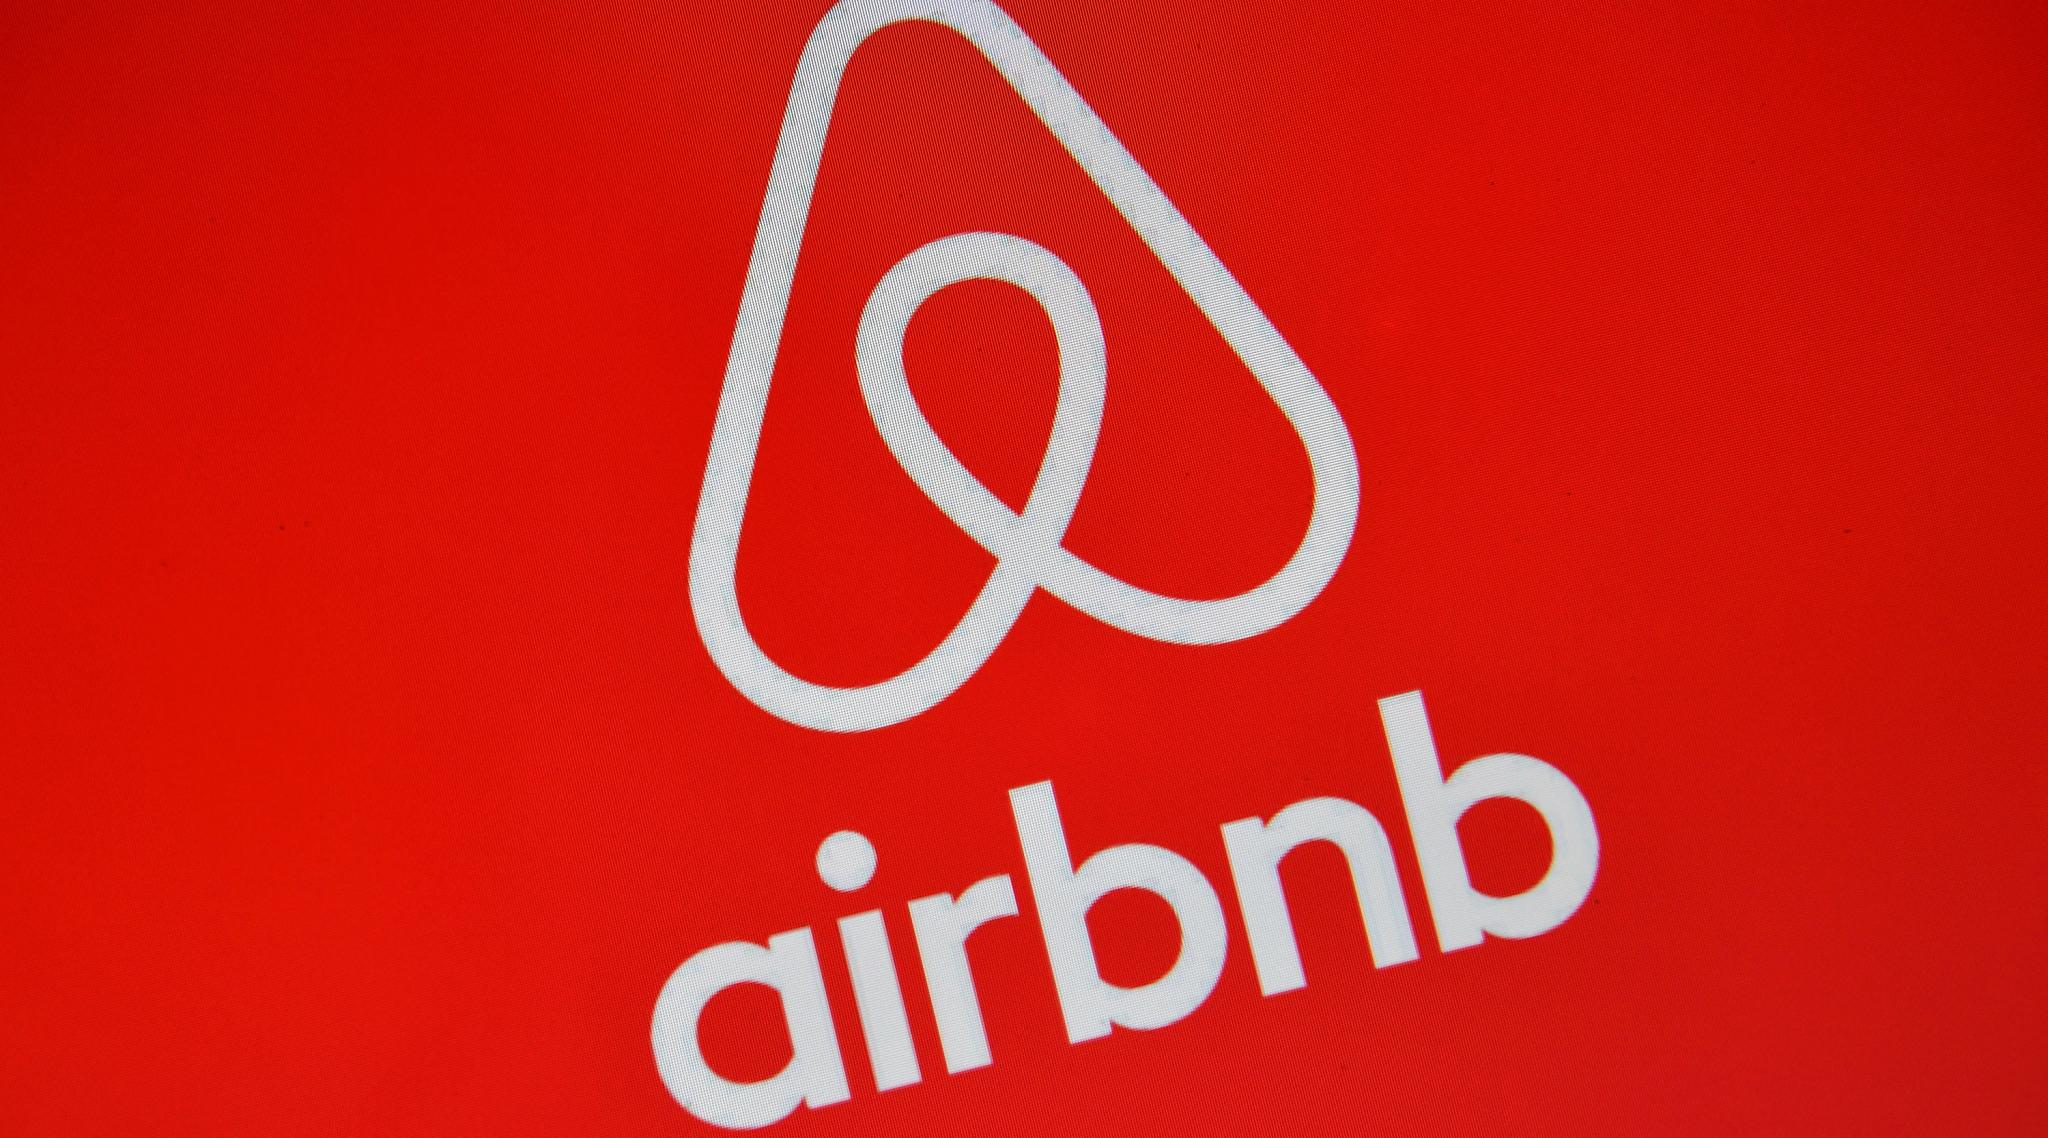 Airbnb to Offer Free or Subsidised Housing to 1,00,000 Relief Workers Responding to COVID-19 Pandemic